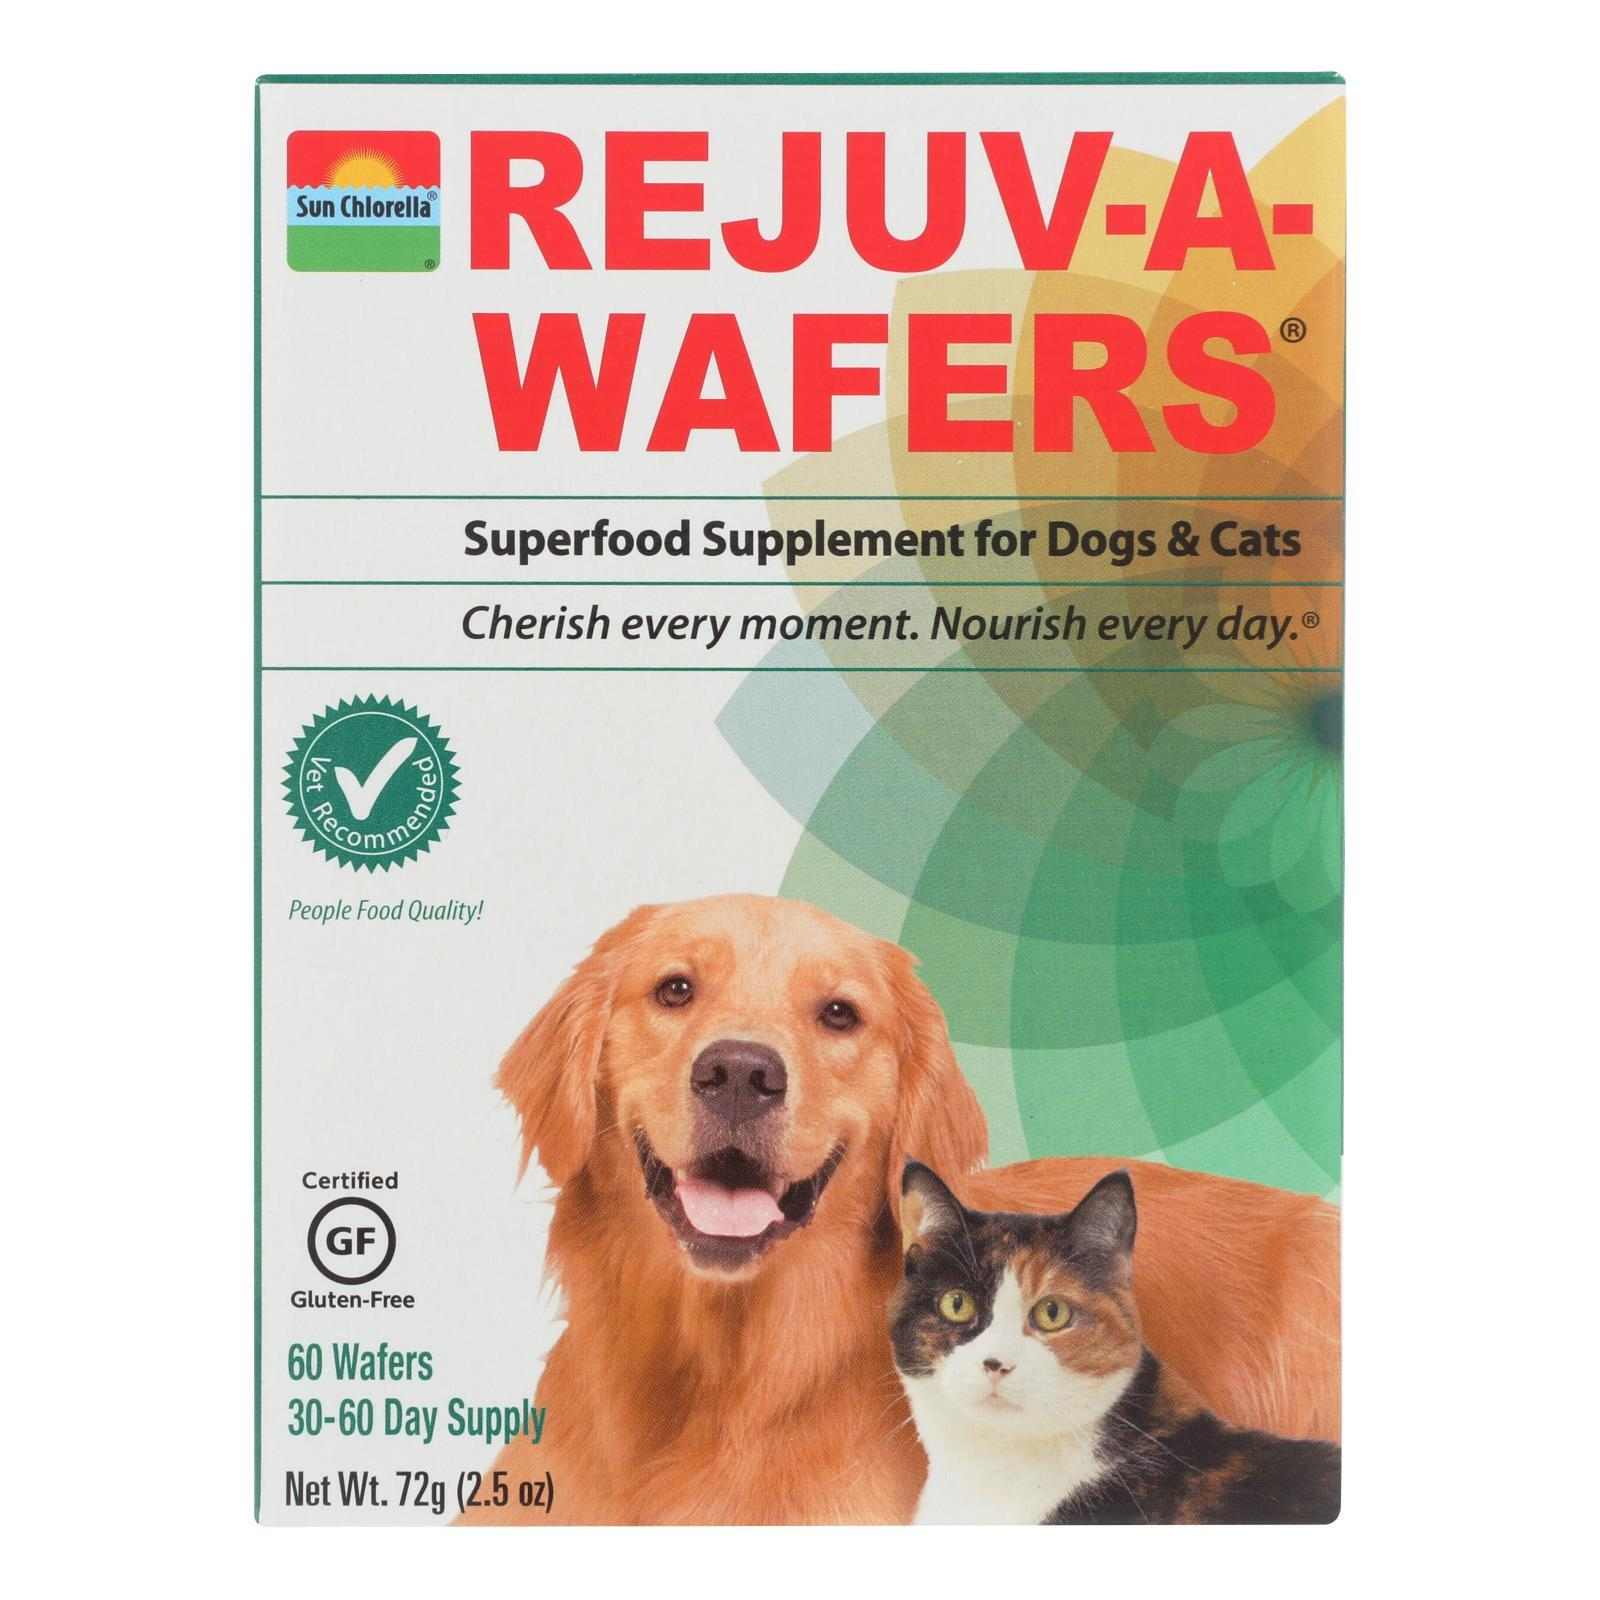 Sun Chlorella Rejuv-A-Wafers Superfood Supplement for Dogs and Cats - 60 Wafers